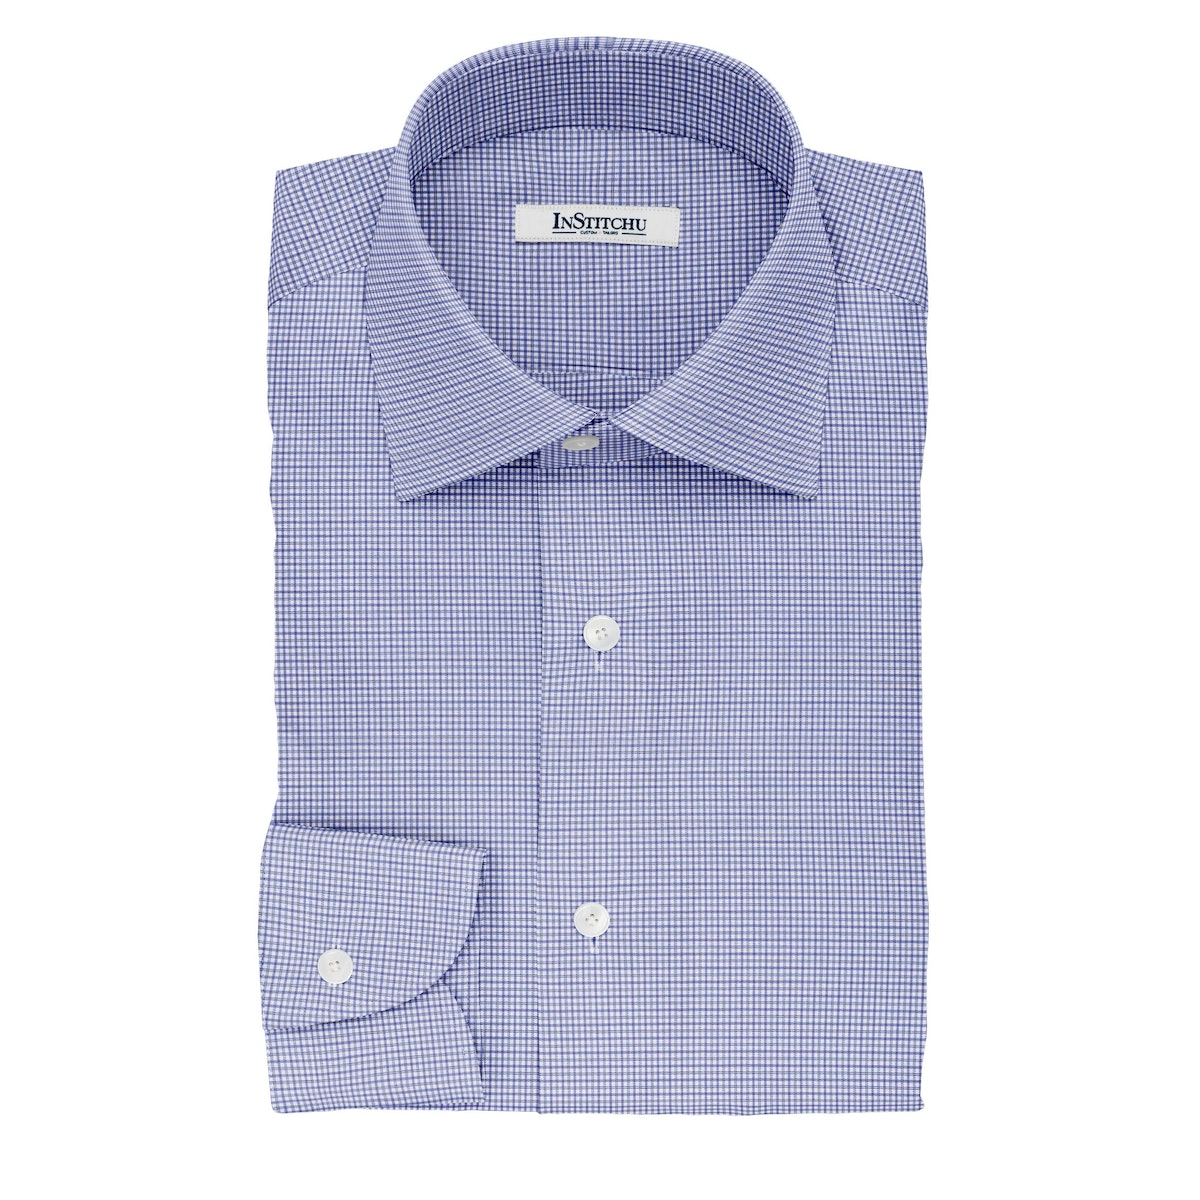 InStitchu Collection The Milton Blue and Navy Plaid Cotton Shirt